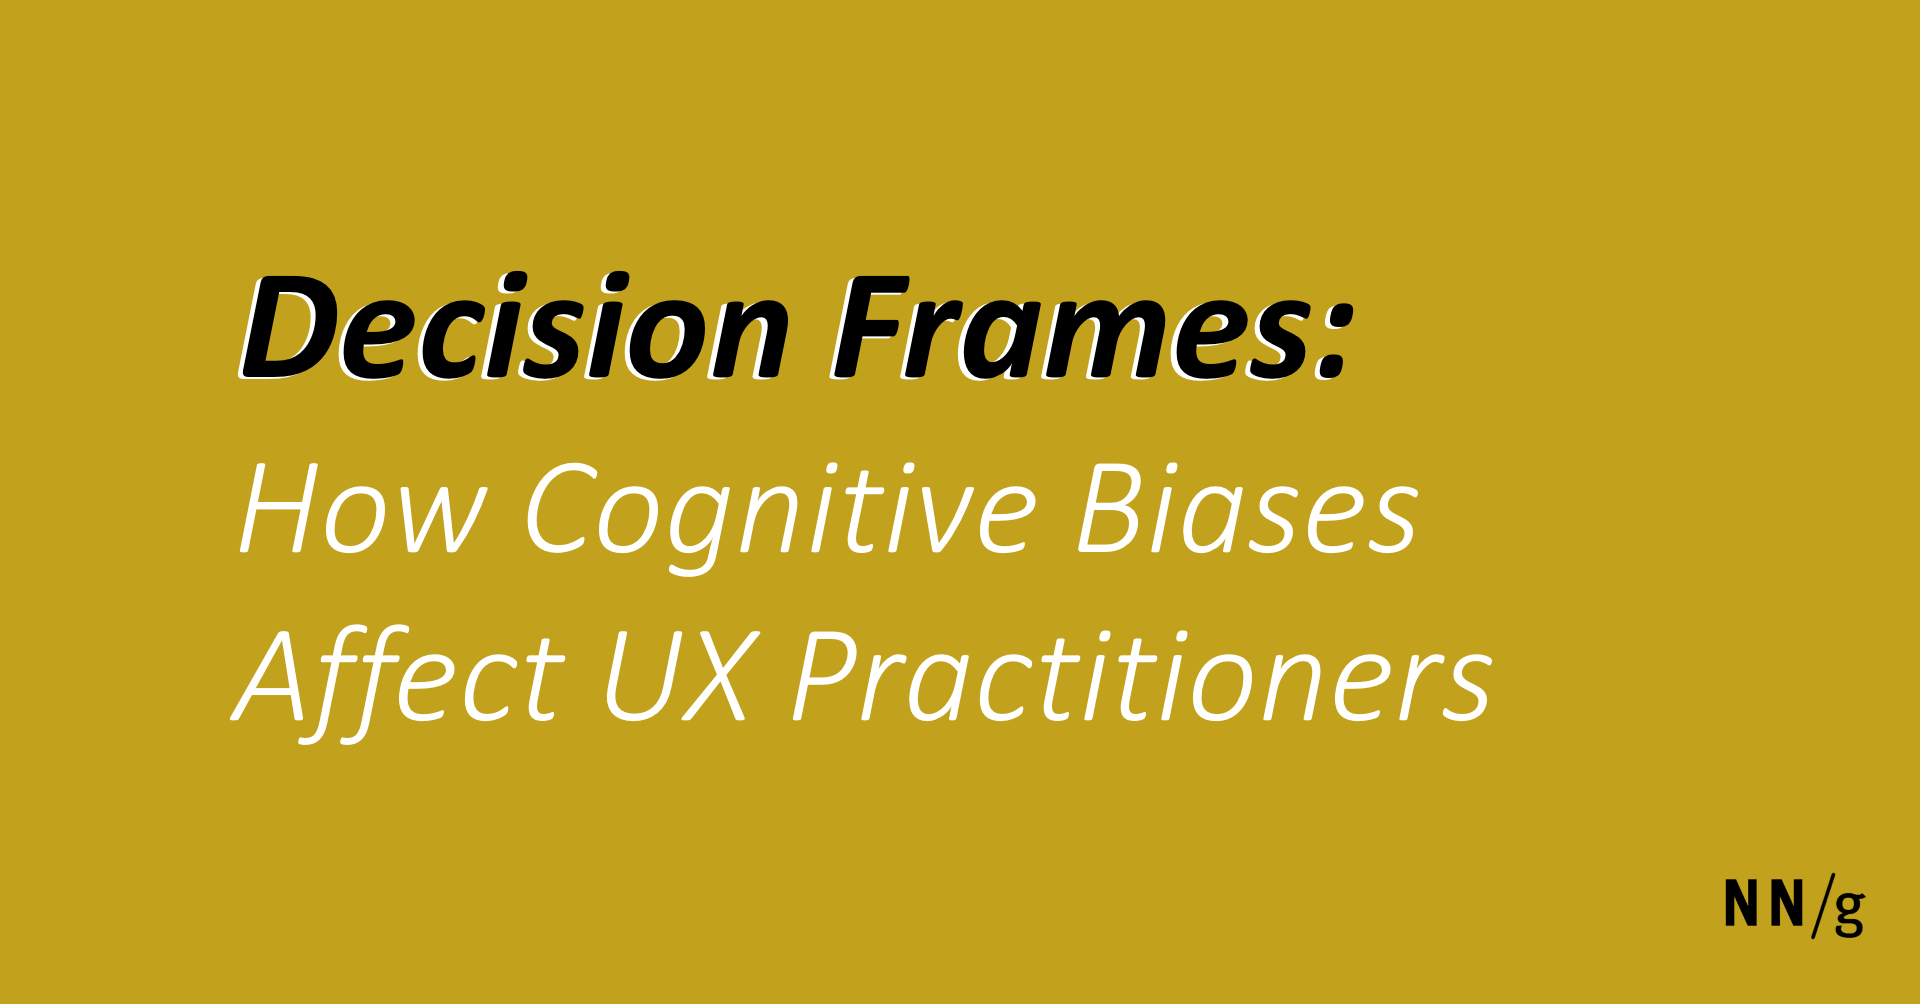 Decision Frames: How Cognitive Biases Affect UX Practitioners